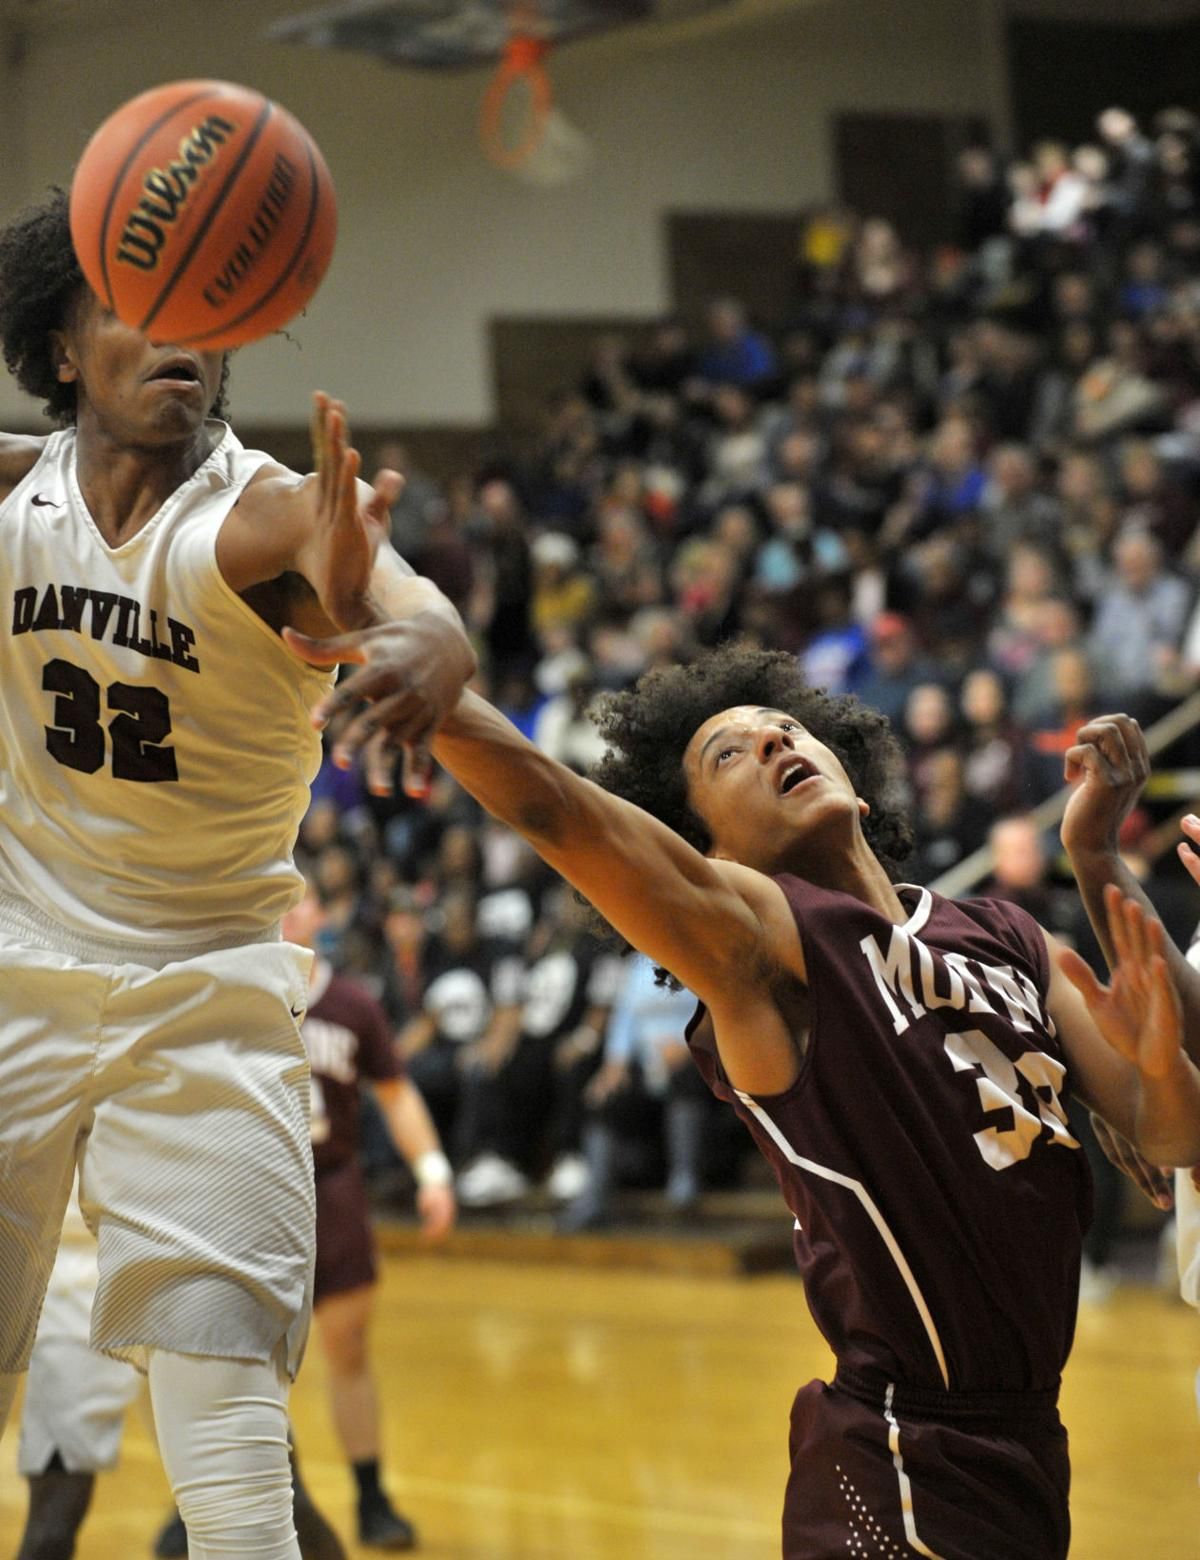 Maroons tough out upset win | High School Boys Basketball ...